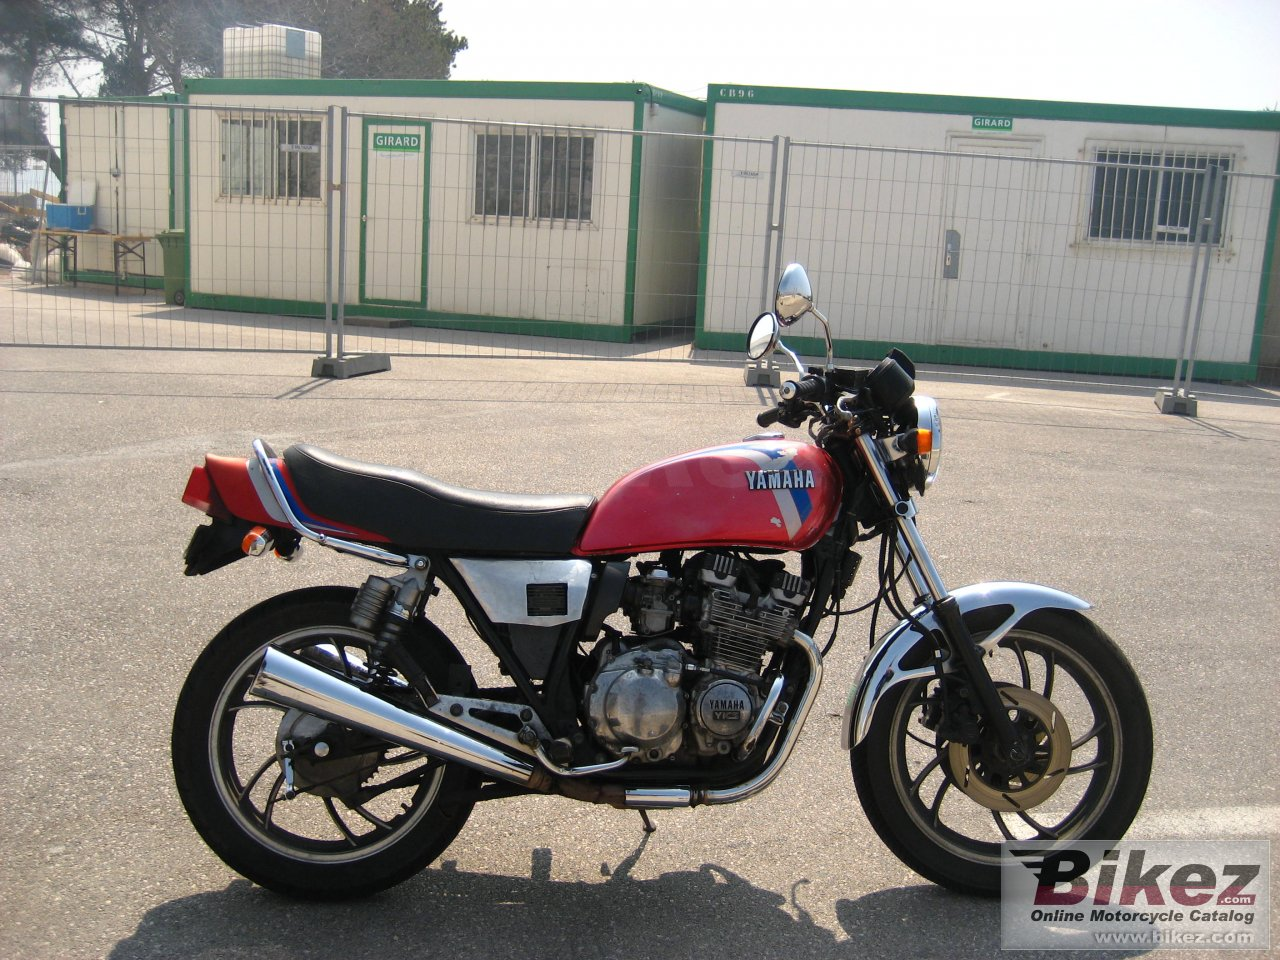 h zephyr 750 rear suspensions and Sito exhaust syst xj 550